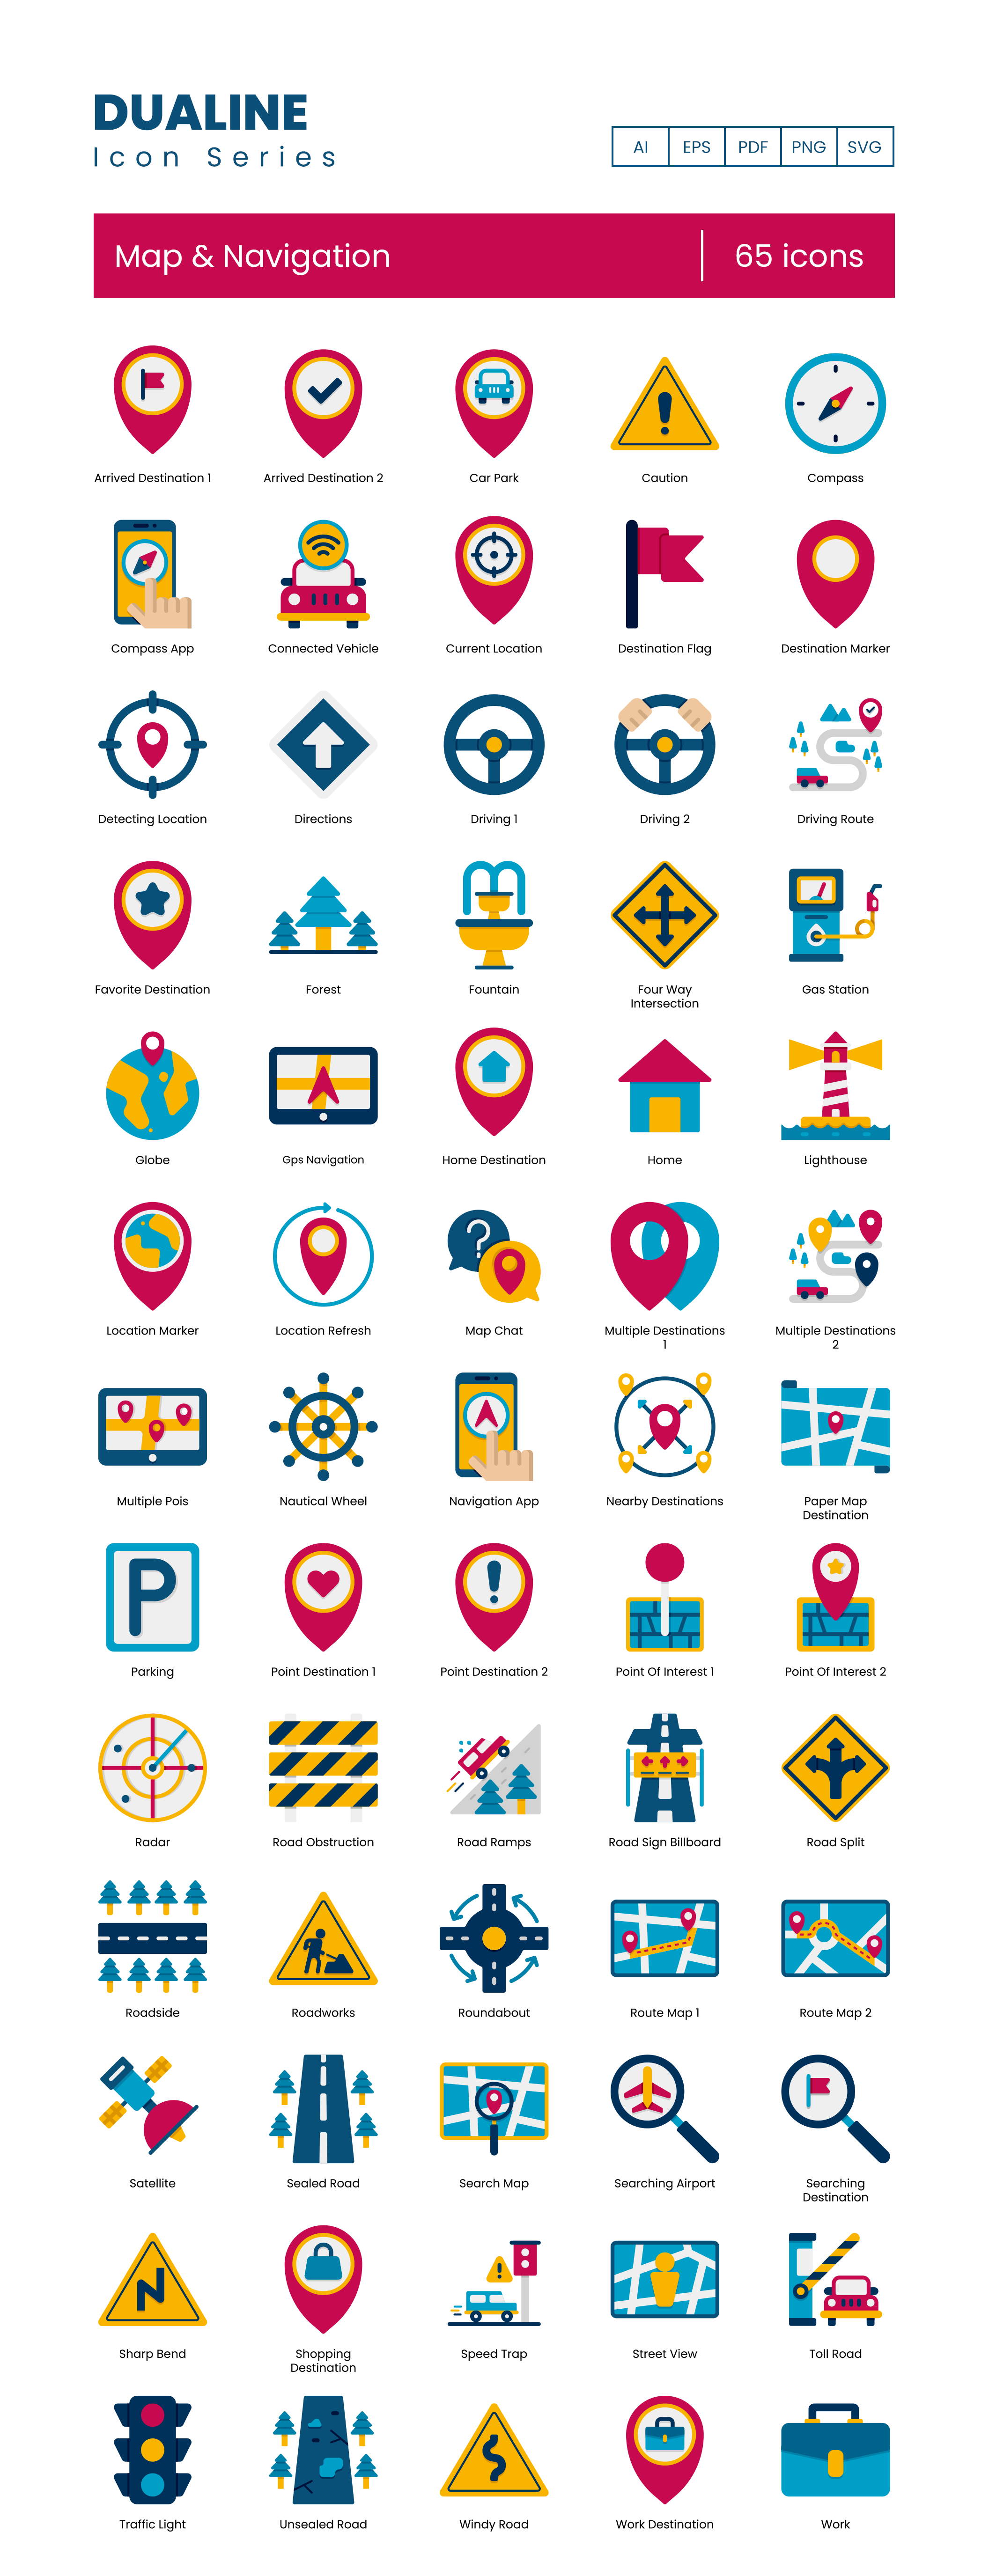 65 Map and Navigation Vector Icons Preview Image